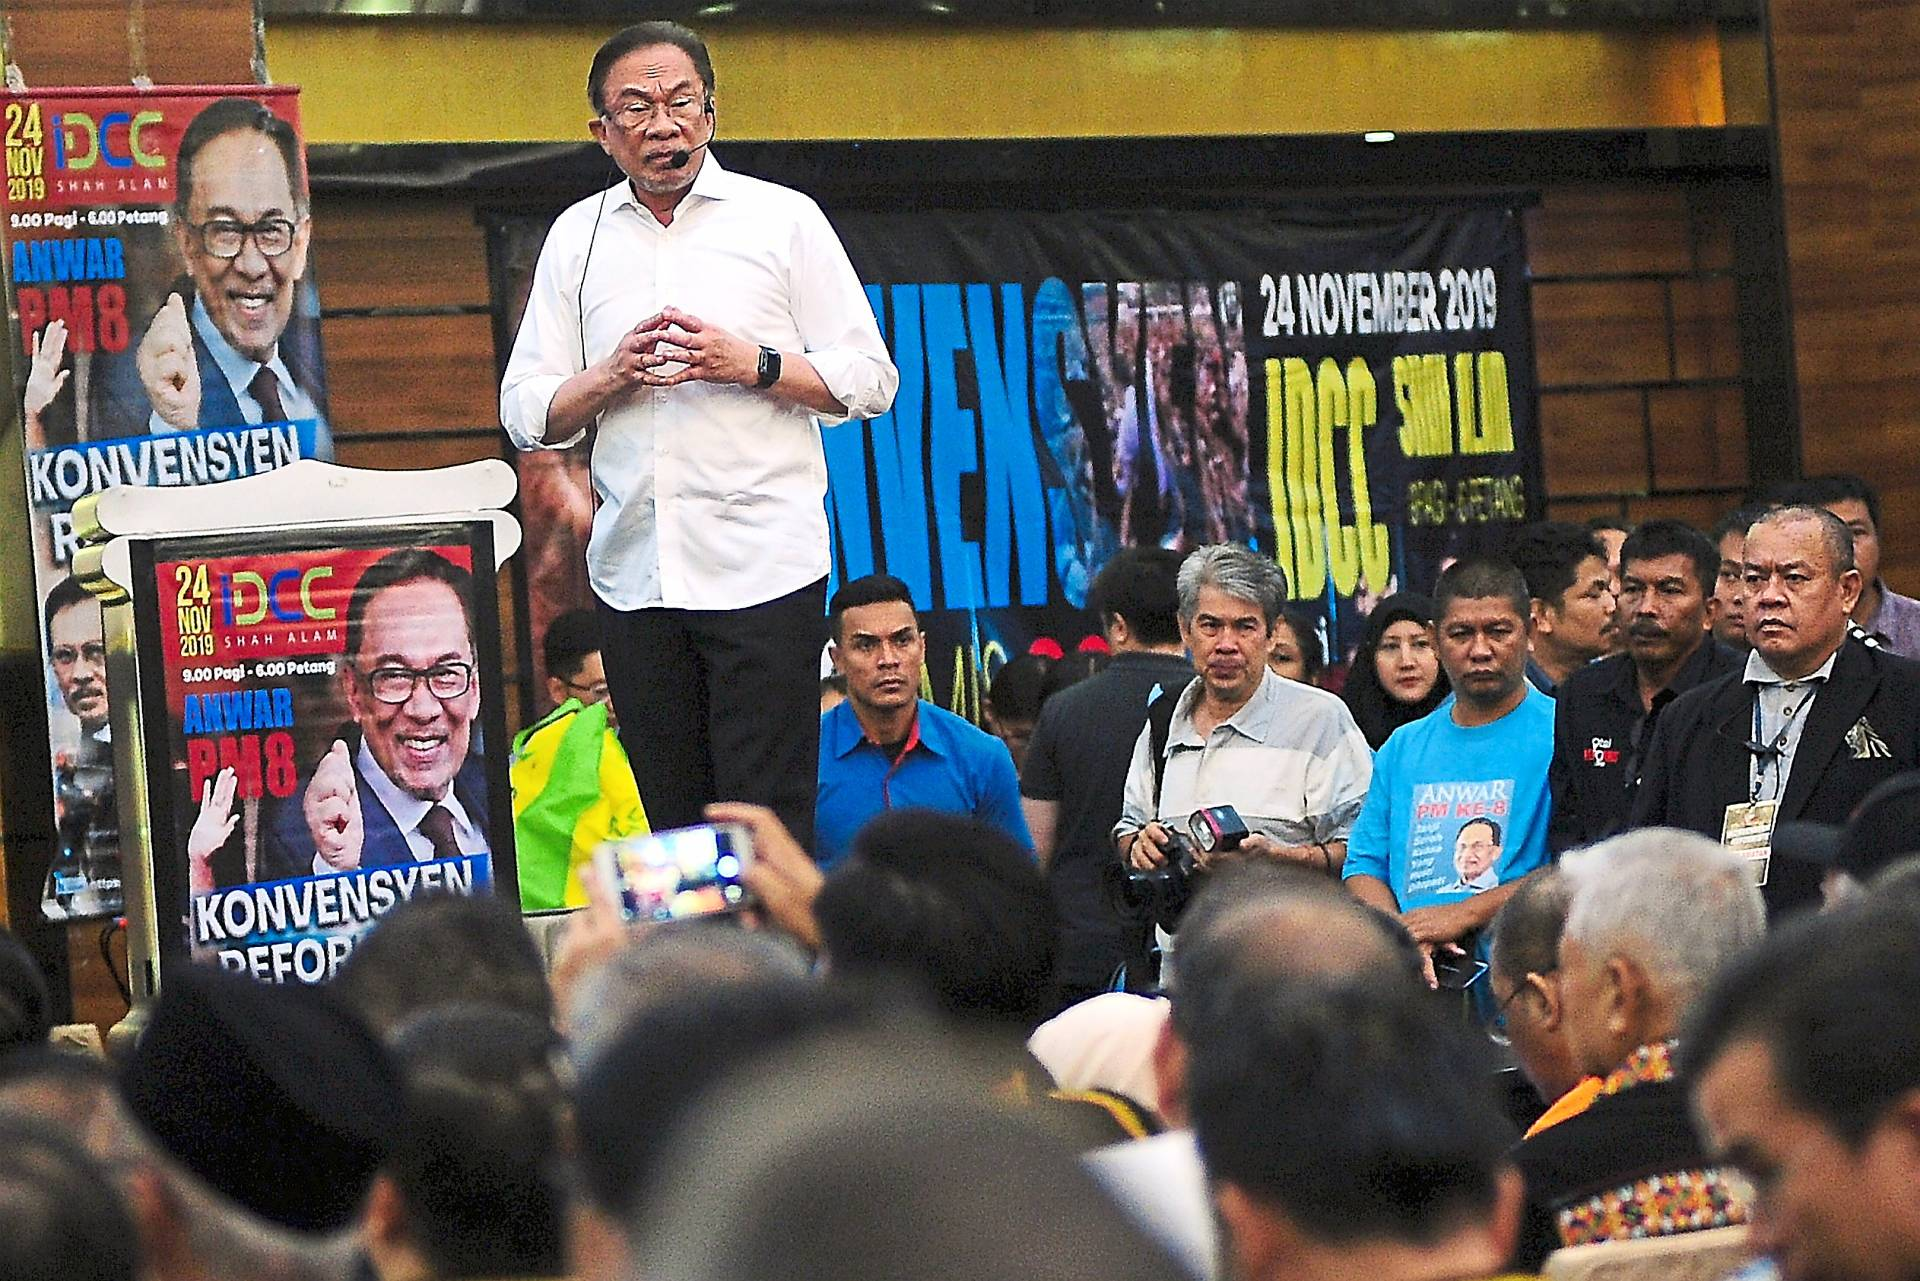 In the spotlight: Anwar speaking at the Reformist Convention 2019 at Ideal Convention Centre in Shah Alam. — Bernama